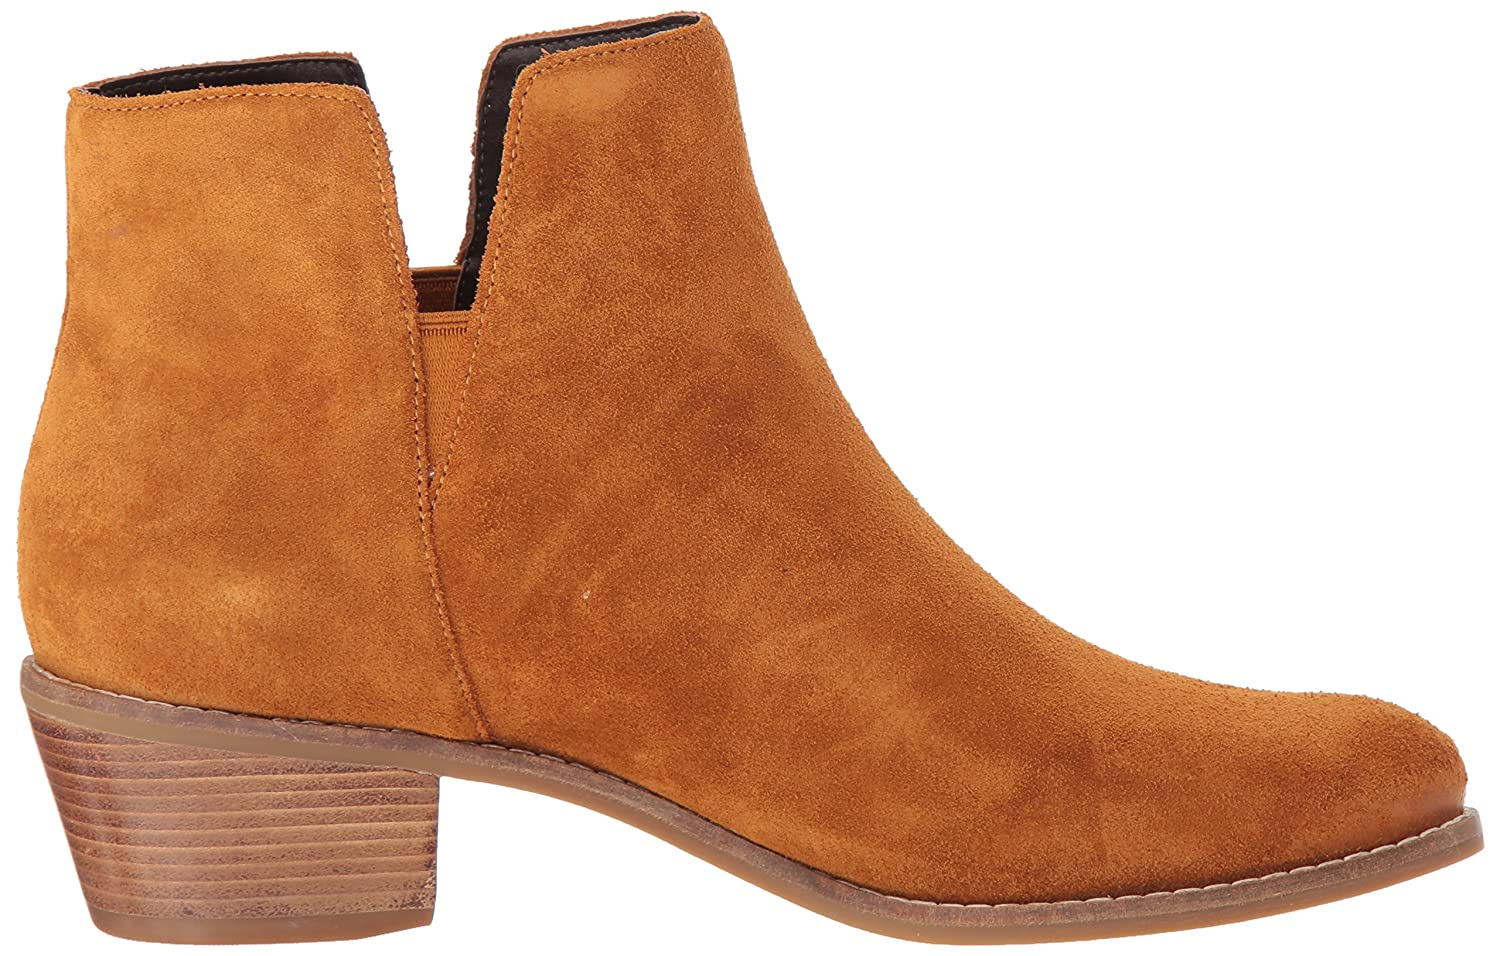 Cole Haan Women's Abbot Ankle Boot B01N9V4OA6 8 B(M) US|Cathay Spice